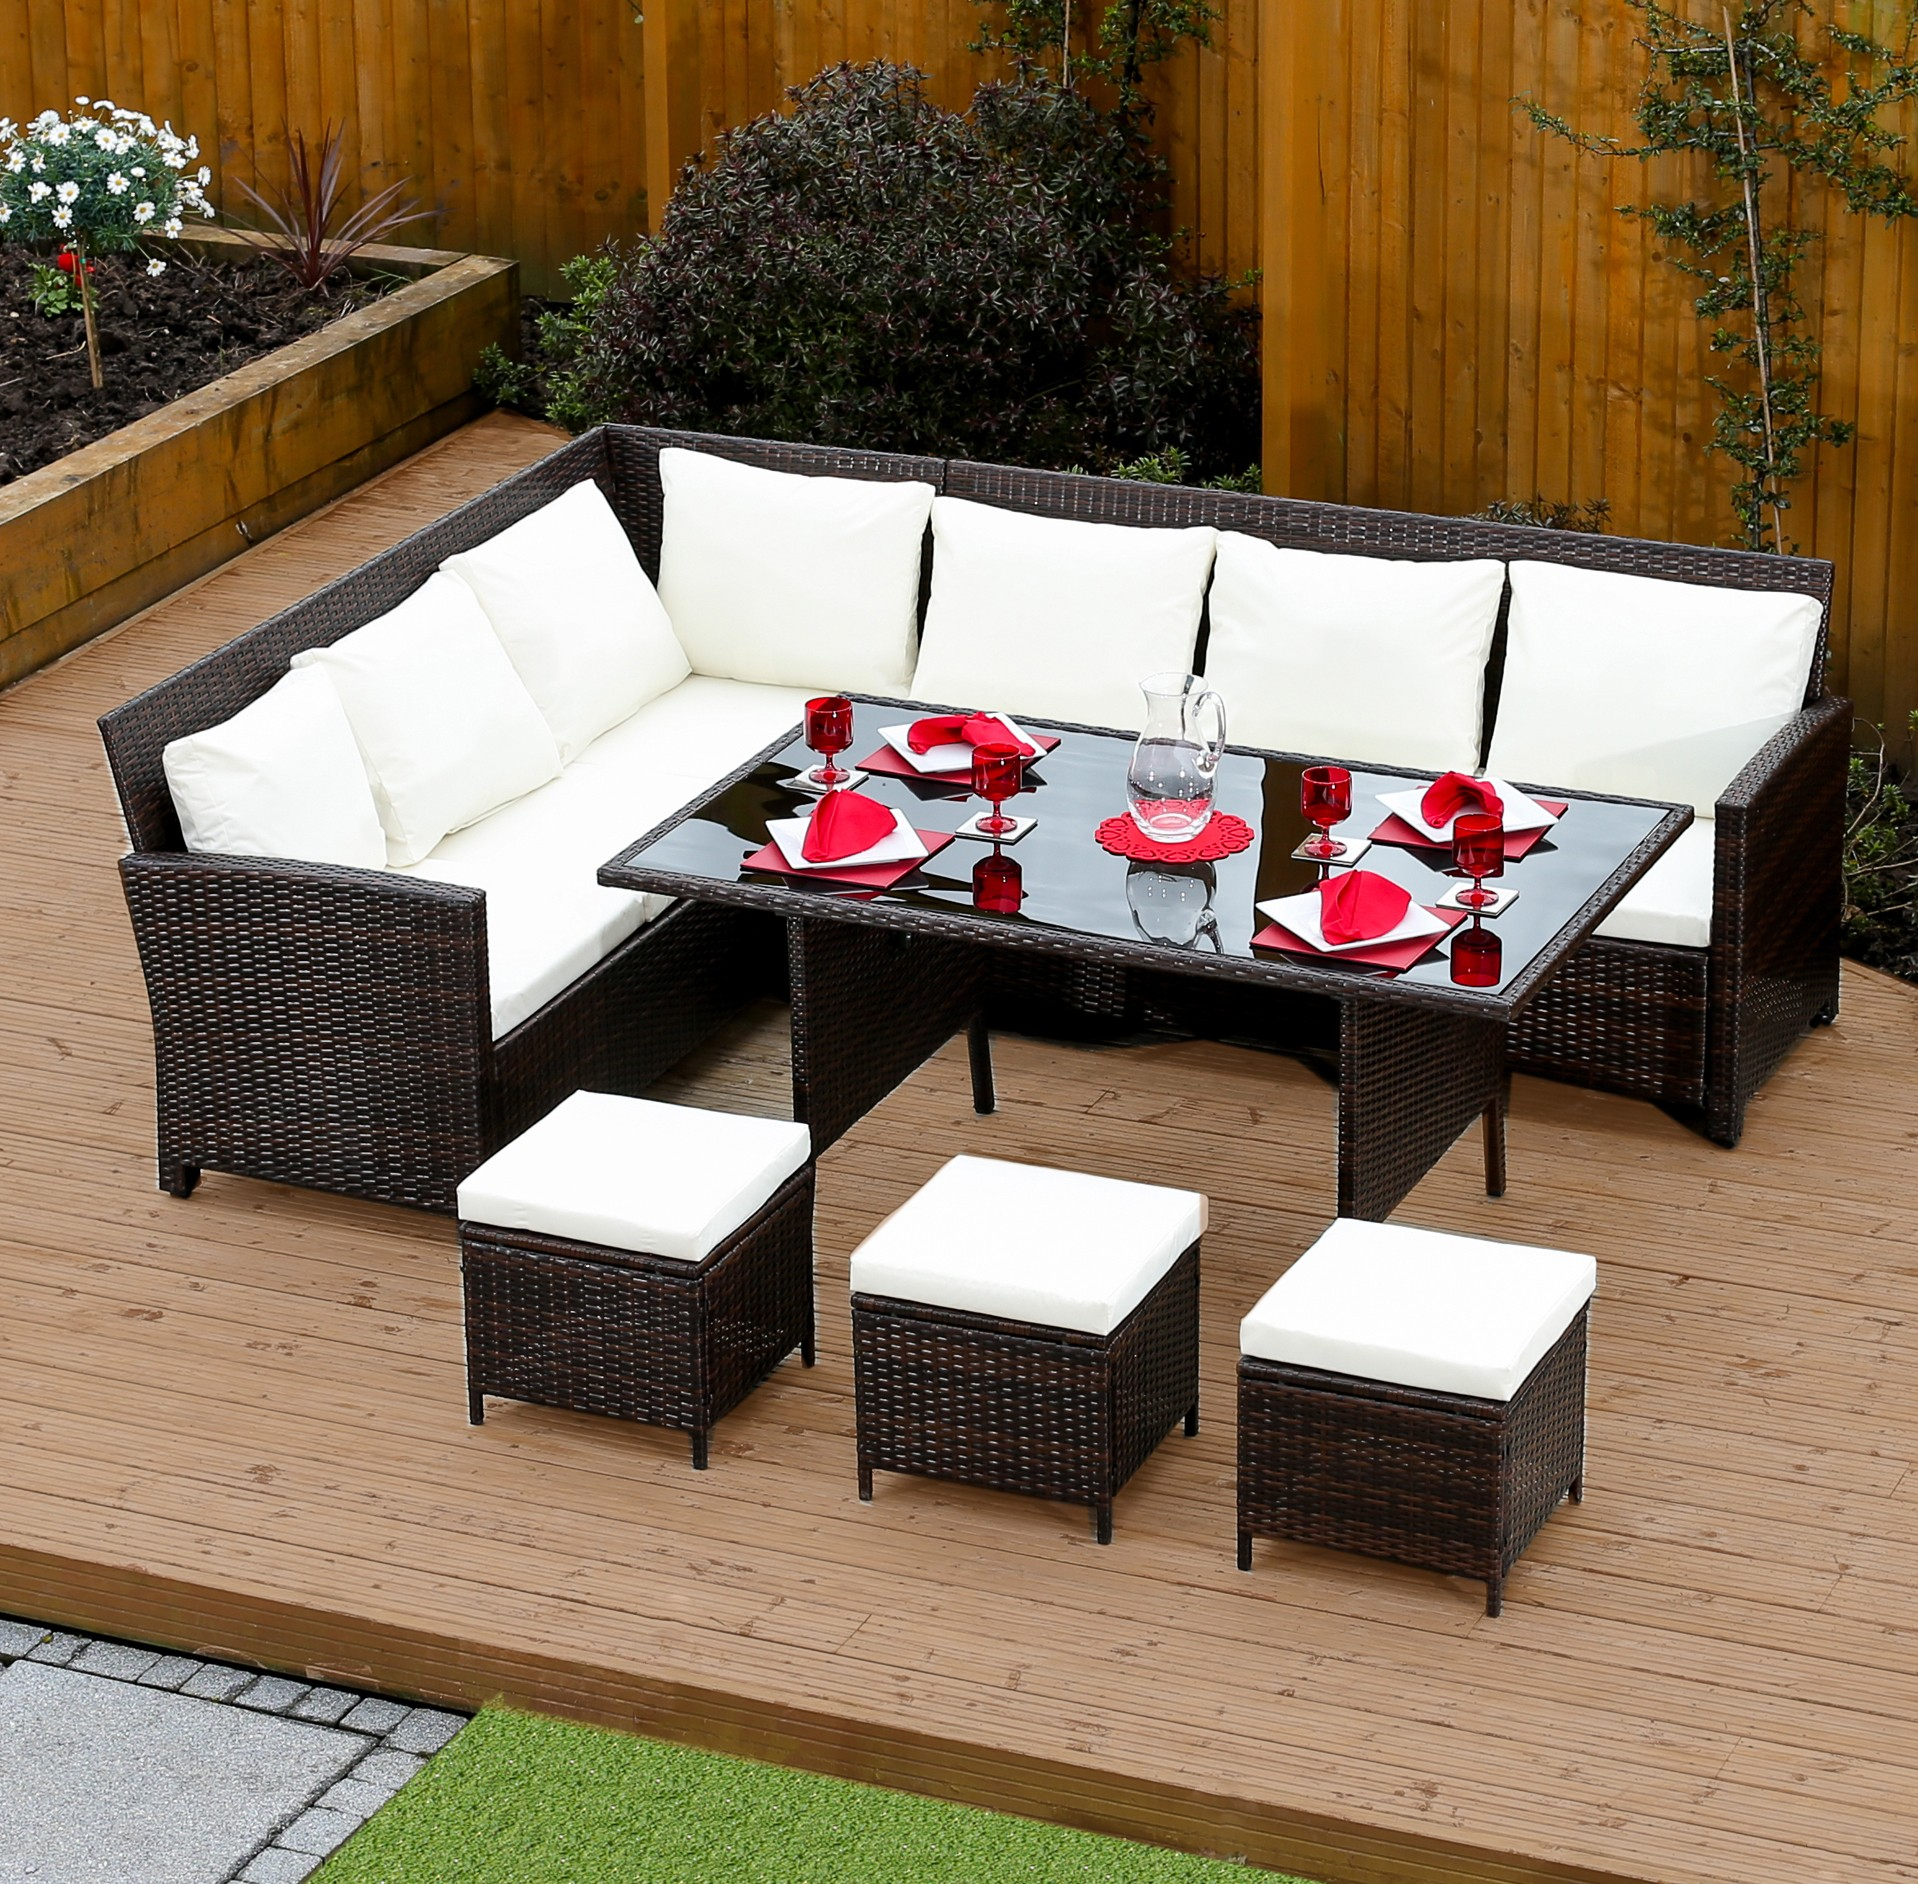 9 Seater Rattan Corner Garden Sofa U0026 Dining Table Set In Brown With Light  Cushions